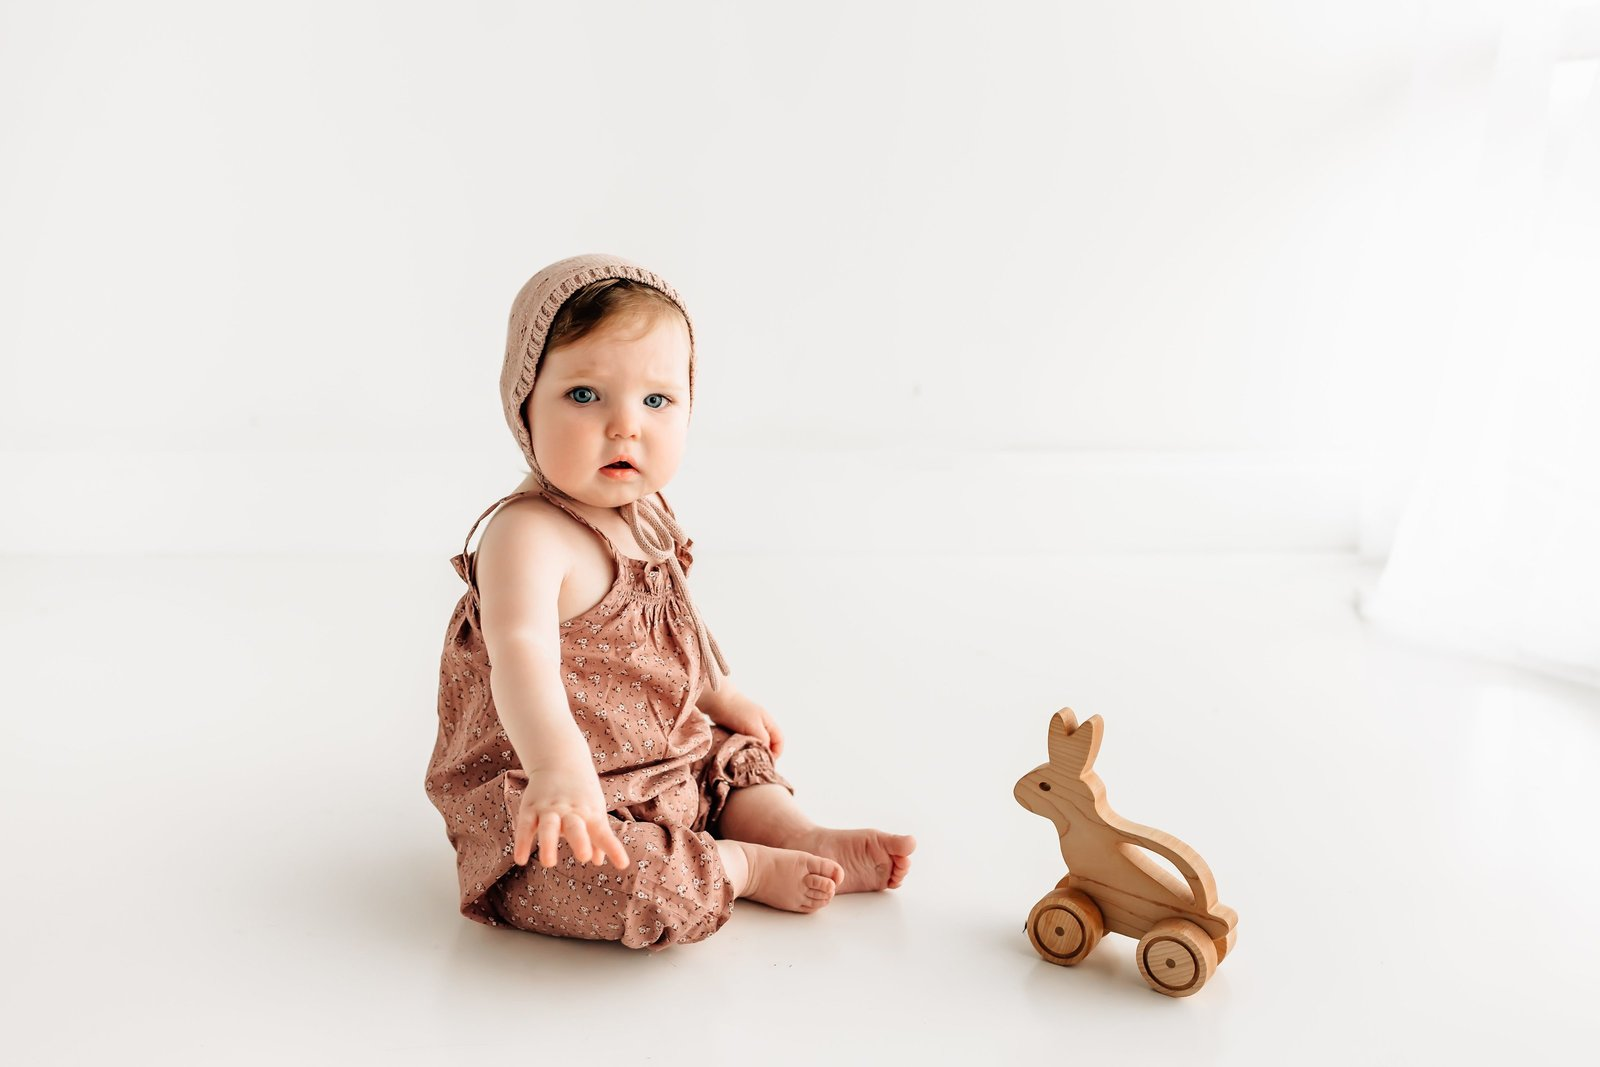 St_Louis_Baby_Photographer_Kelly_Laramore_Photography_11